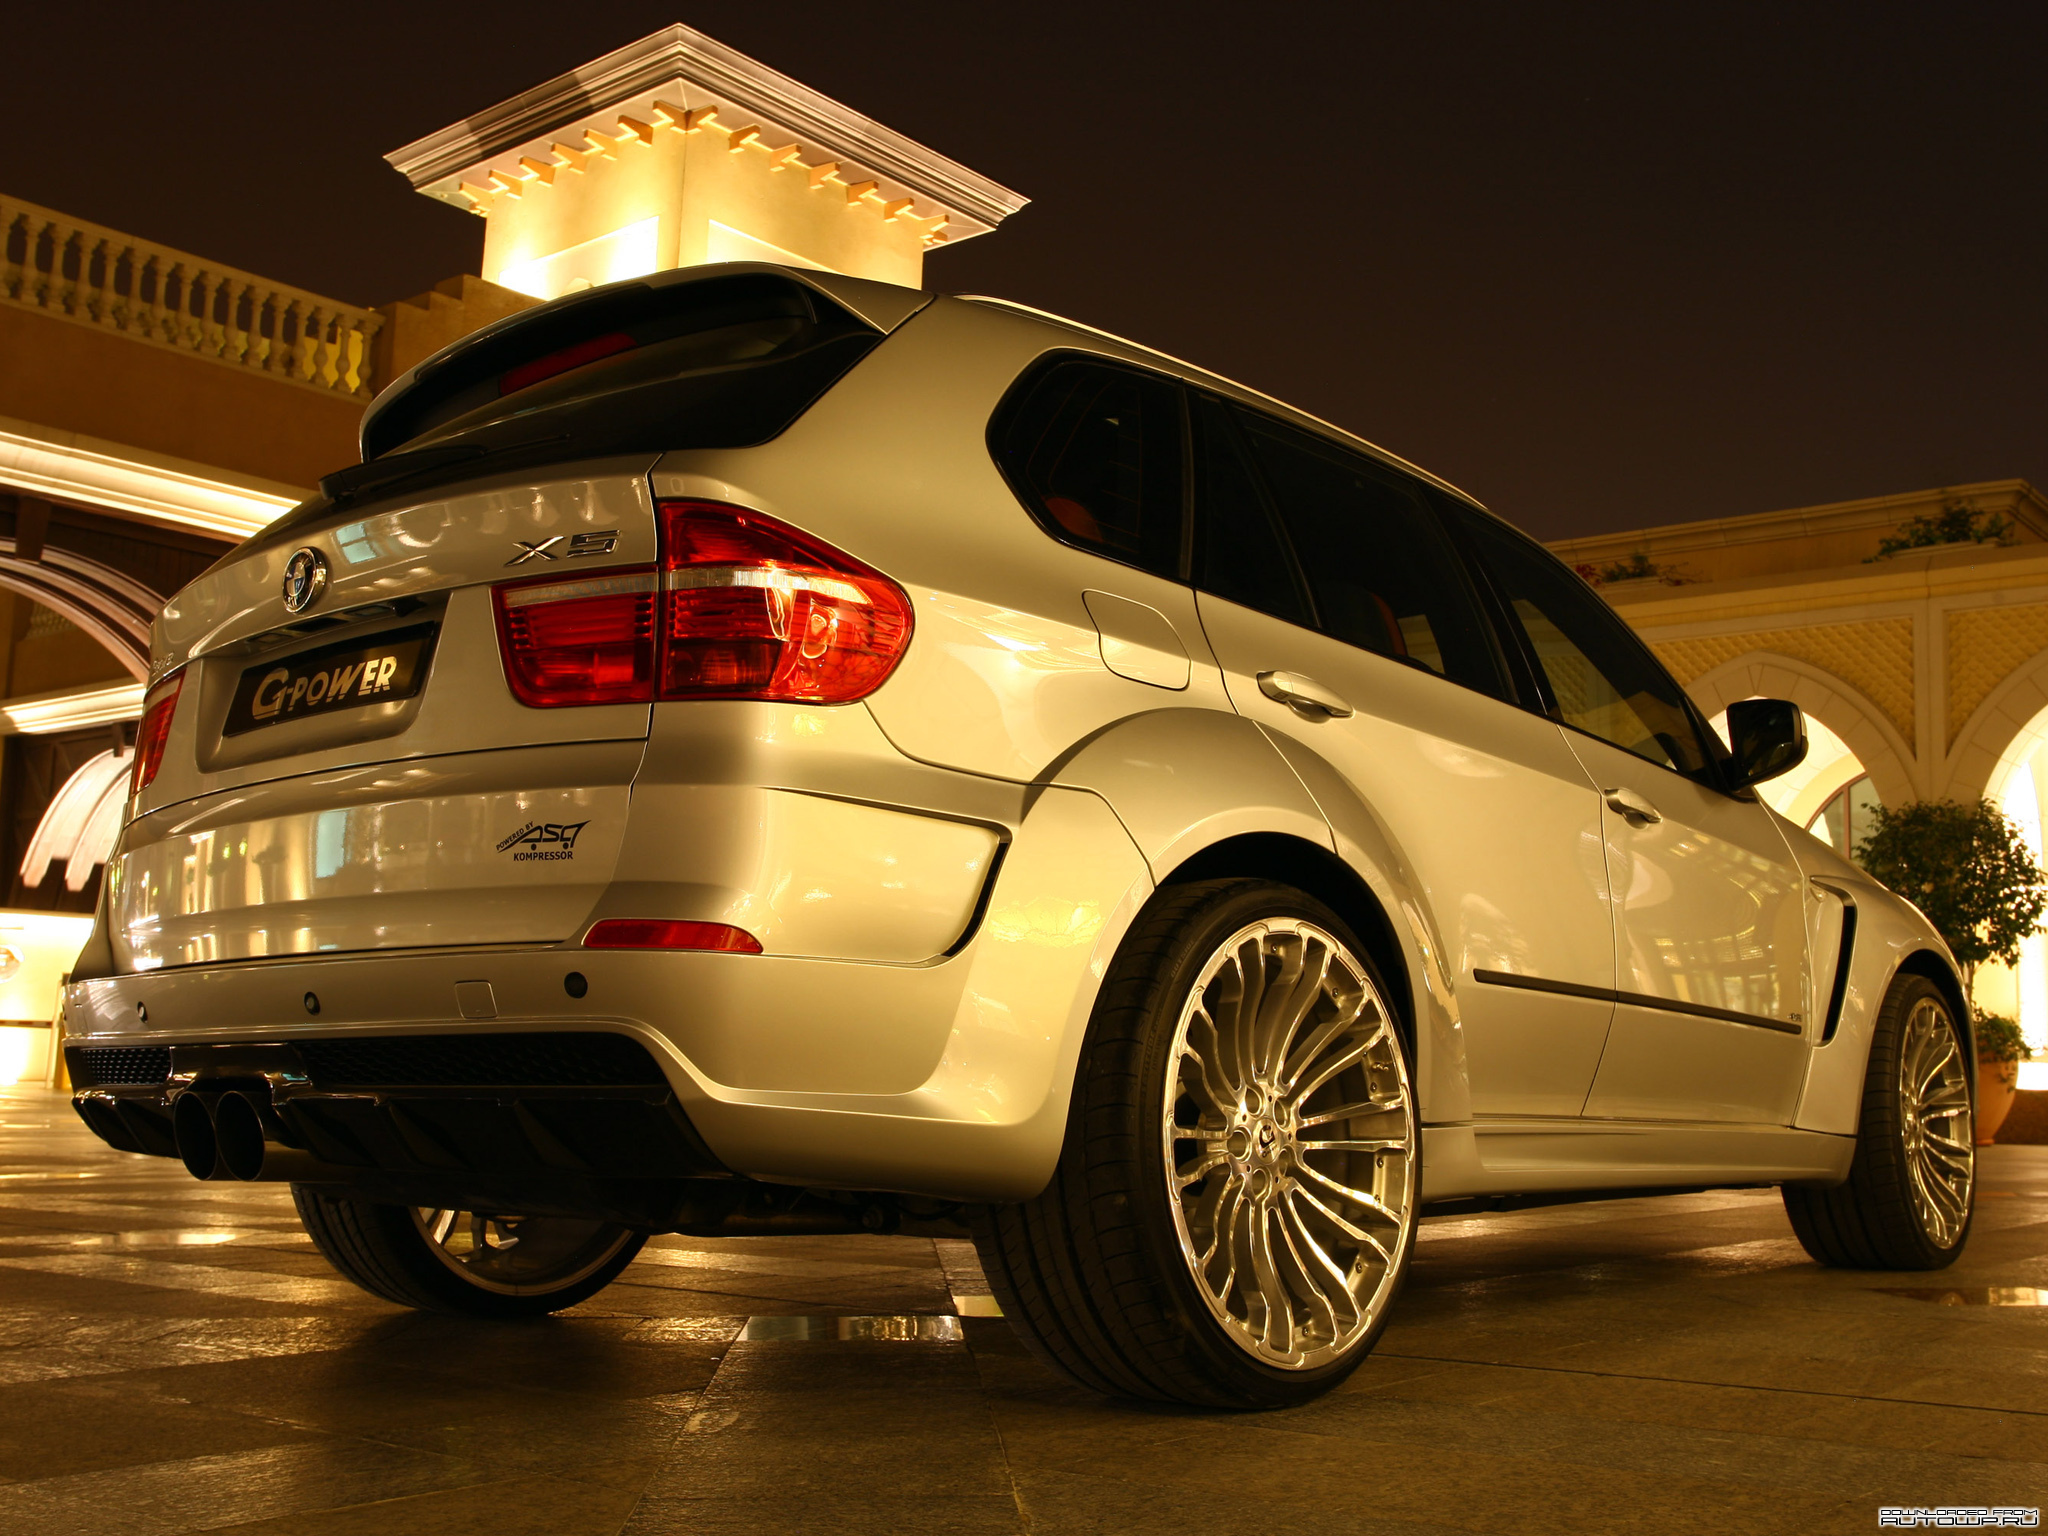 G Power BMW X5 Typhoon (E70) photo 63300